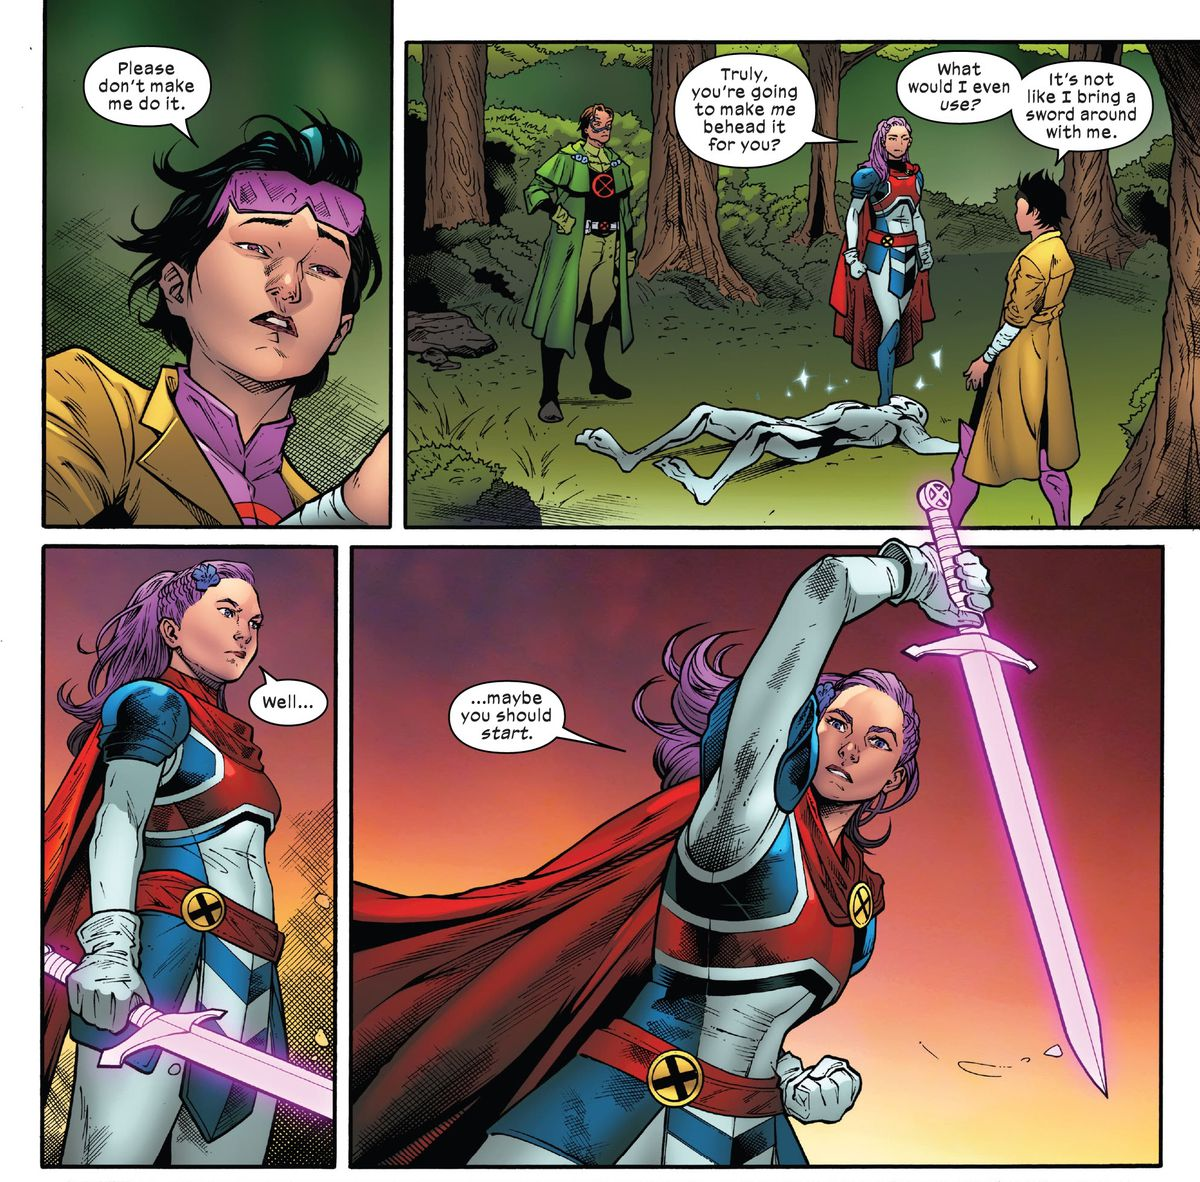 """Jubilee protests that she can't behead the warwolf, because she doesn't carry a sword around with her. """"Well... maybe you should start,"""" says Betsy Braddock/Captain Britain, raising her sword, in Excalibur #8, Marvel Comics (2020)."""